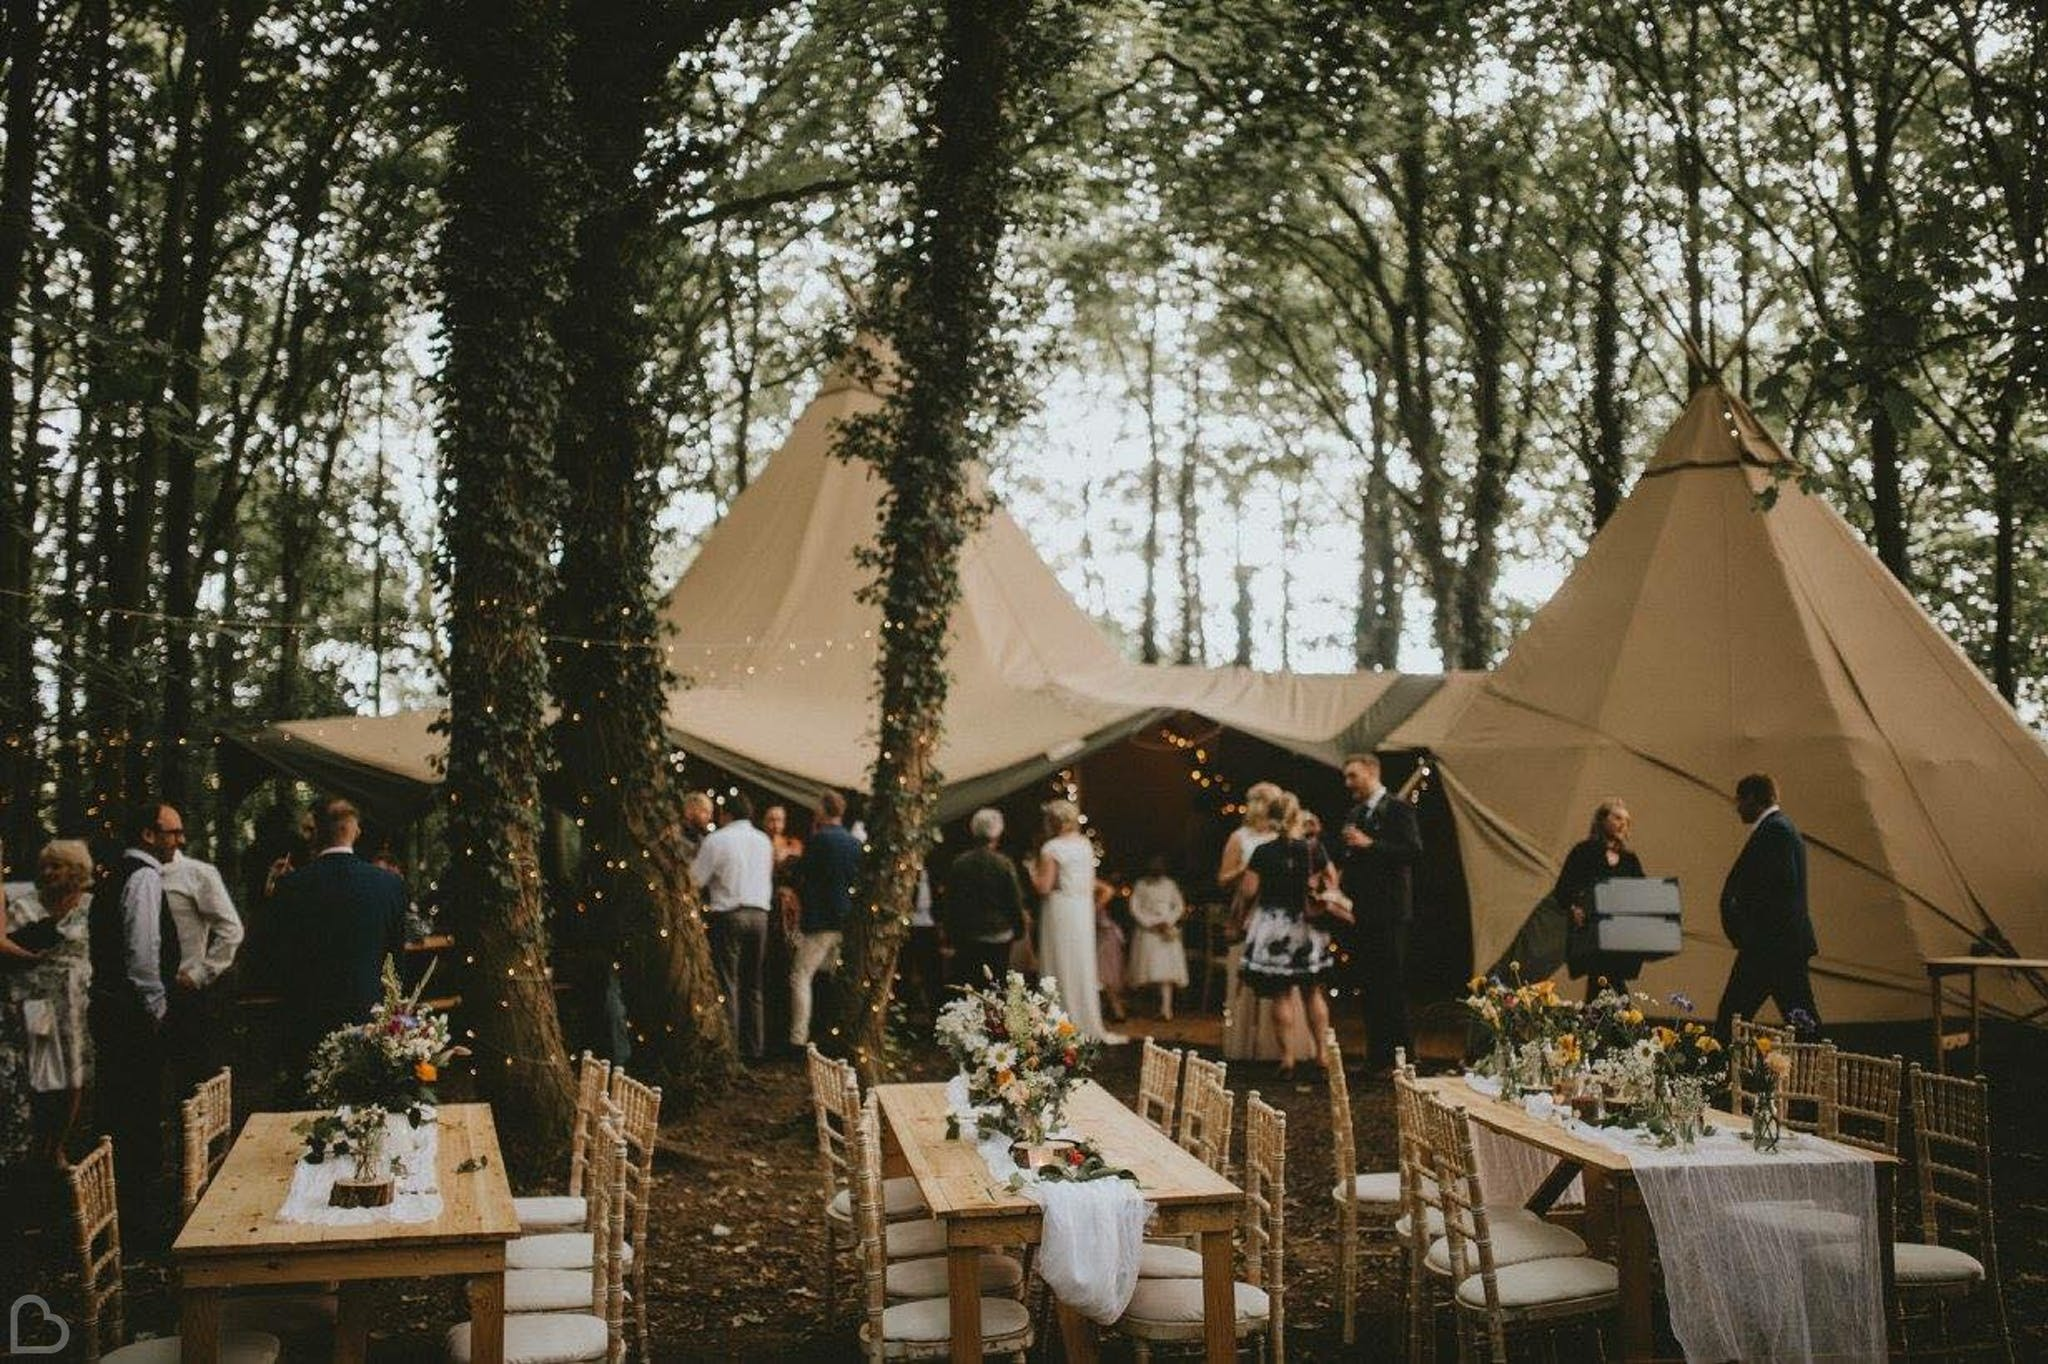 Applewood Weddings tents in the forrest.